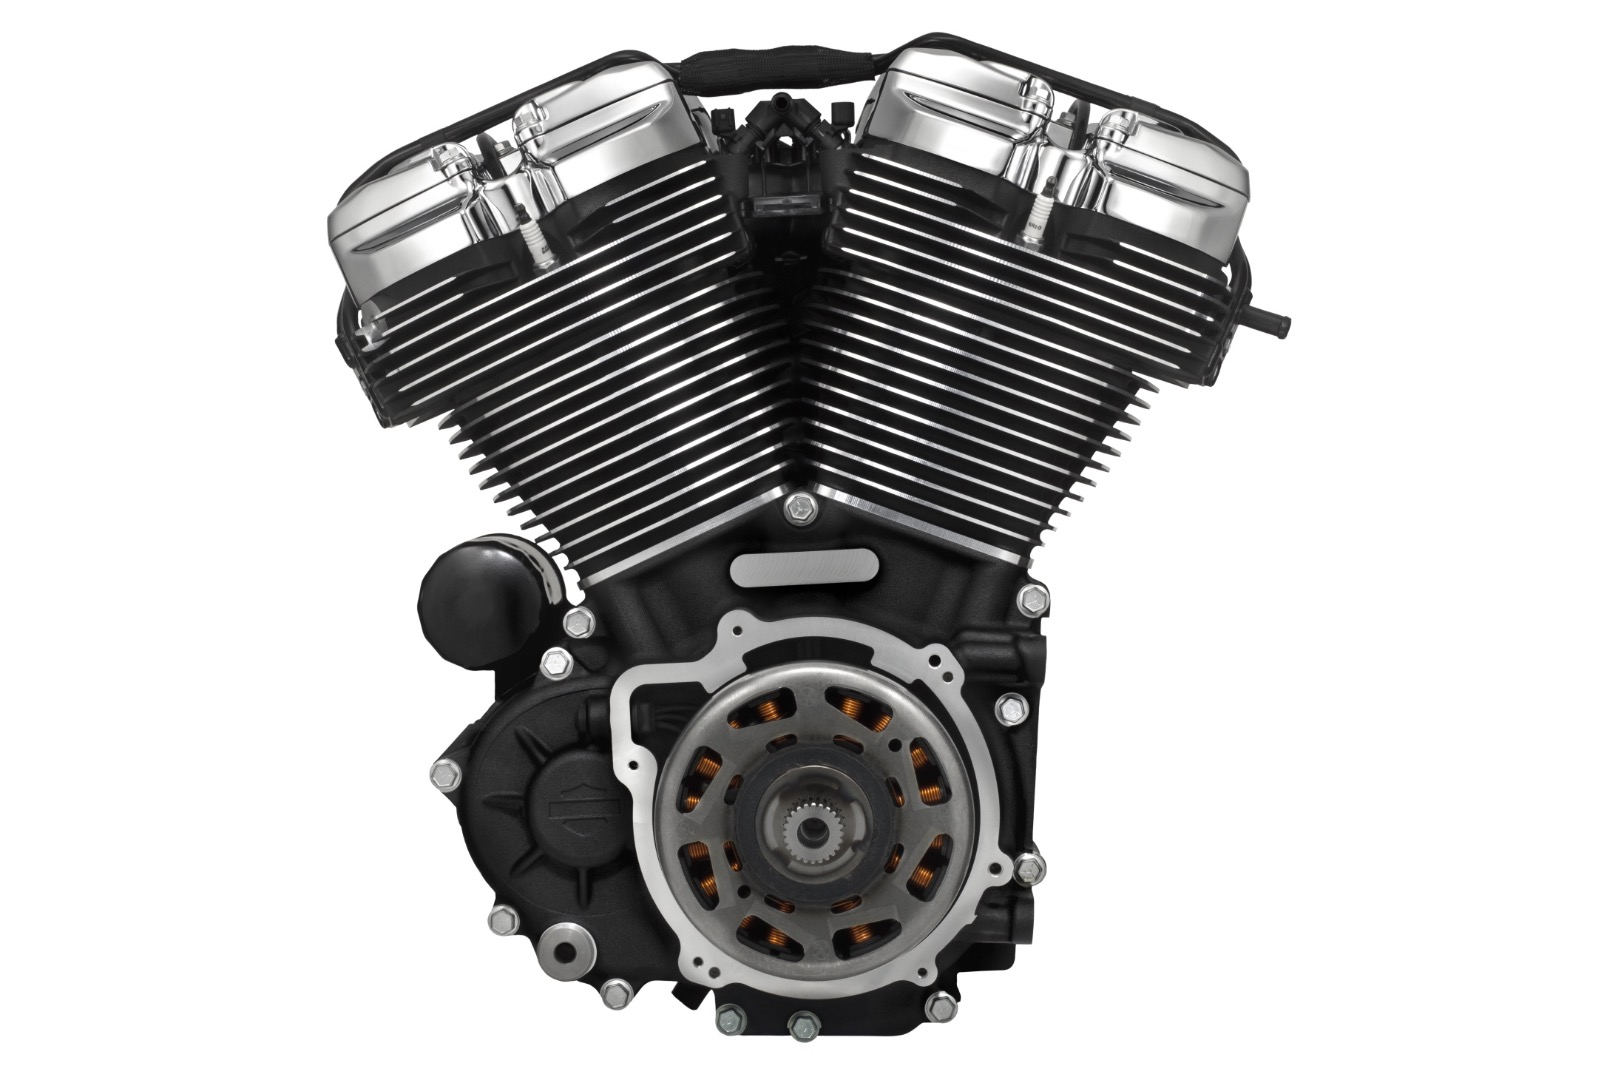 2017 Harley-Davidson Milwaukee-Eight Engines | 11 Fast Facts